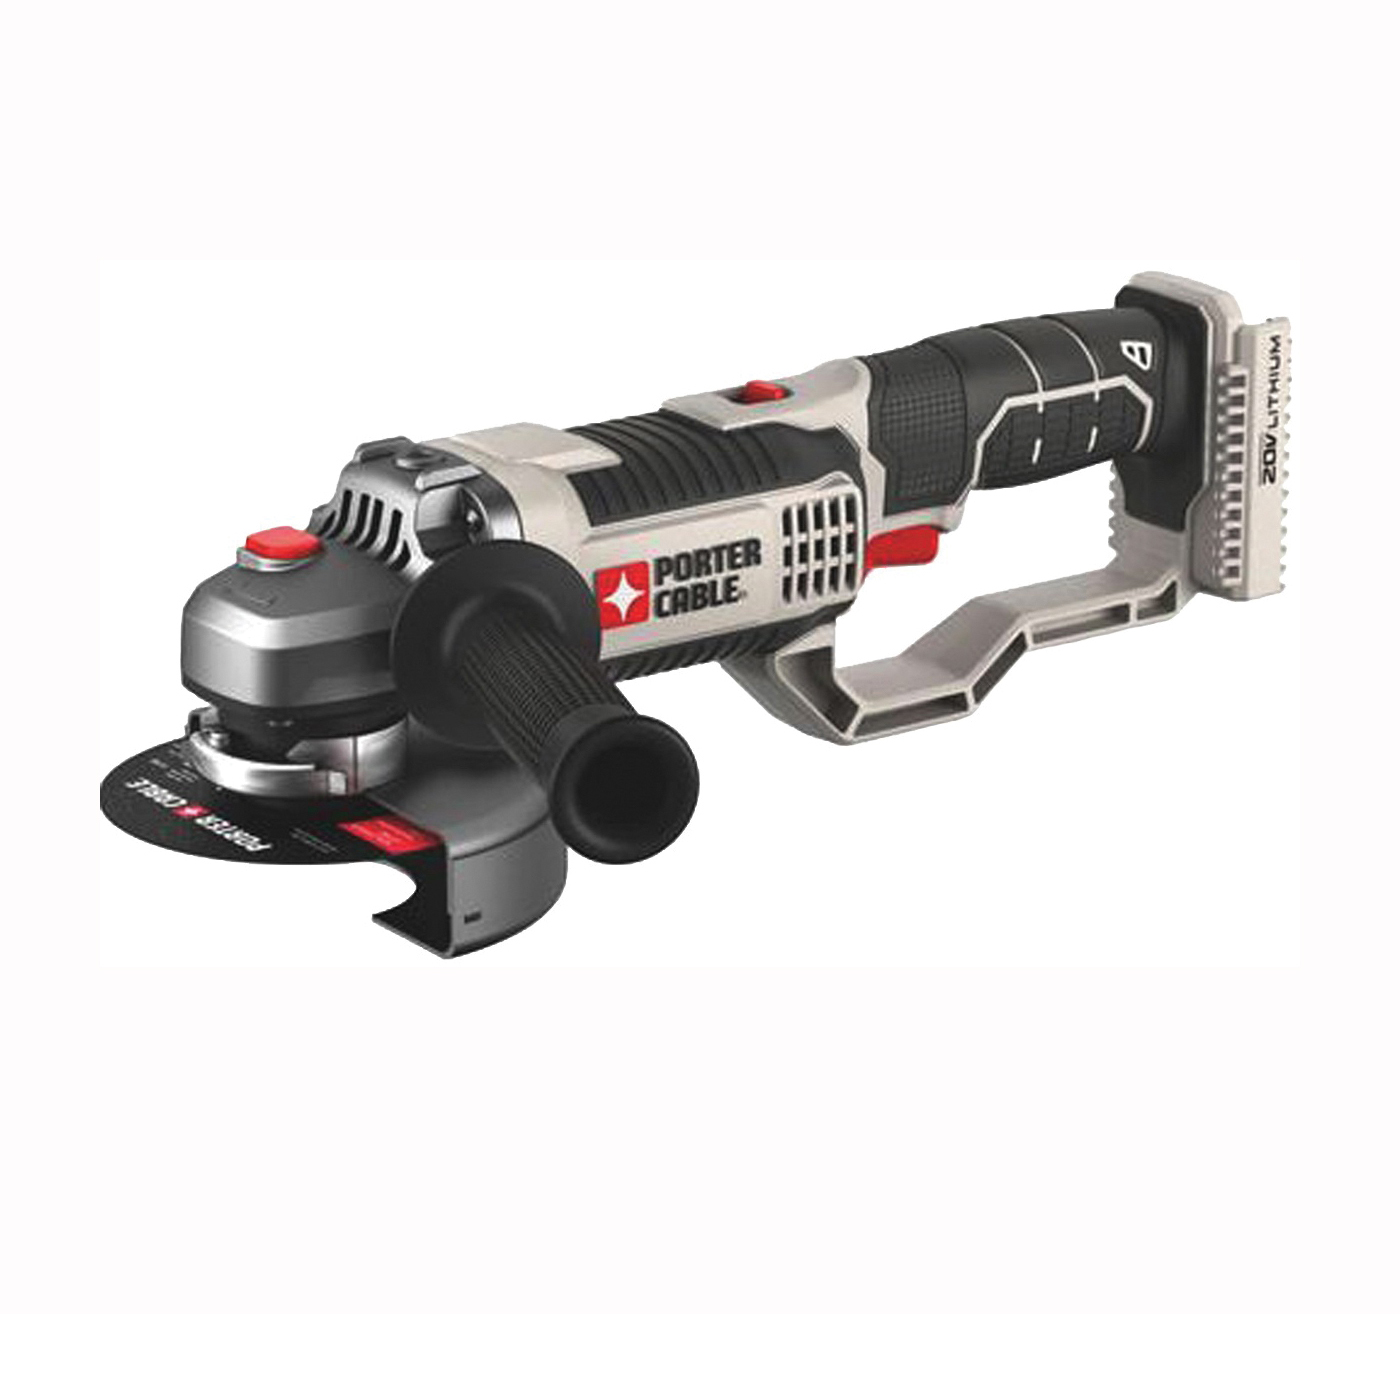 Picture of PORTER-CABLE PCC761B Cut-Off Grinder, Bare Tool, 20 V Battery, 4 Ah, 5/8 in Spindle, 4-1/2 in Dia Wheel